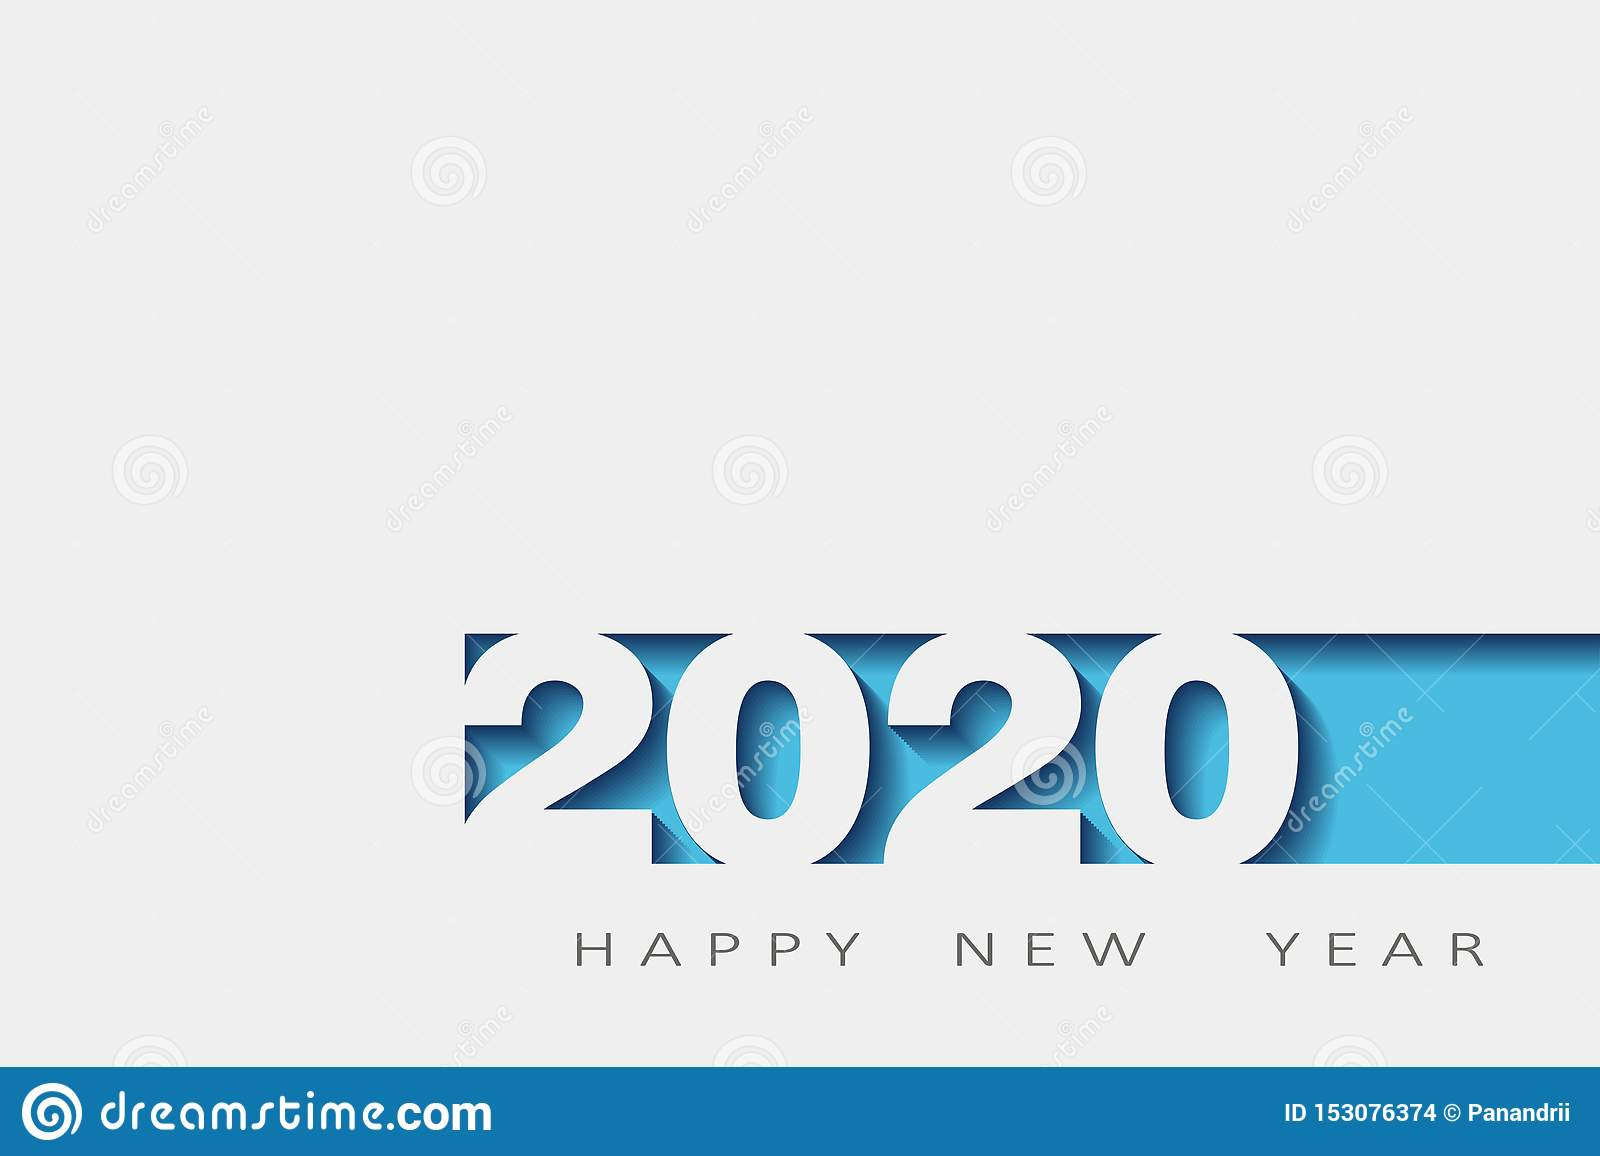 2020 happy new year, year of the rat, design 3d, illustration,Layered realistic, for banners, posters flyers